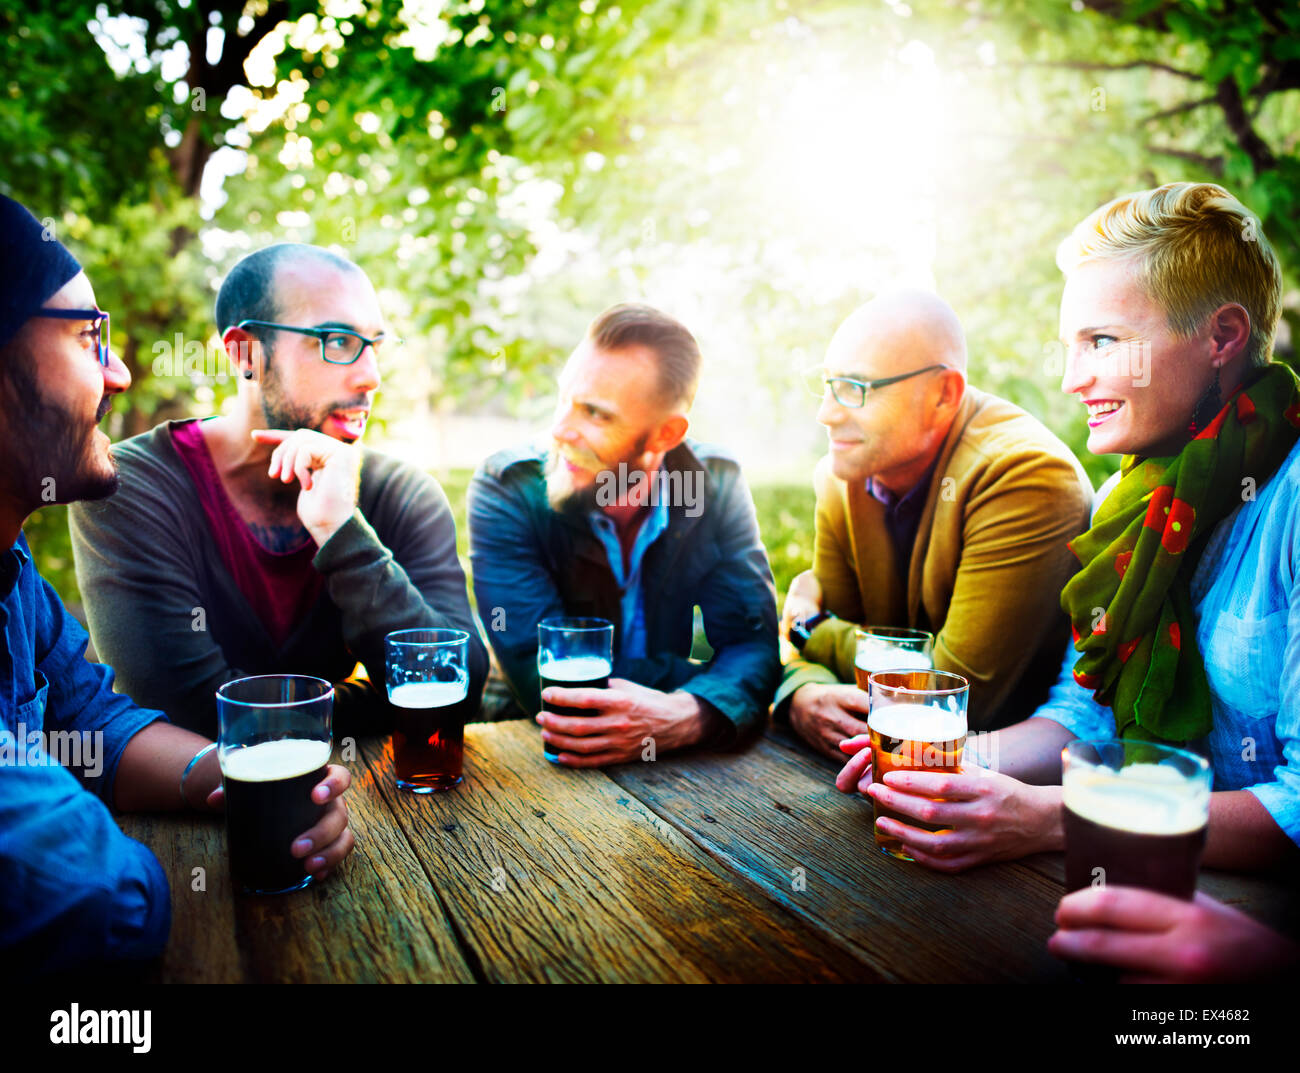 People Beer Drinking Party Friendship Concept - Stock Image